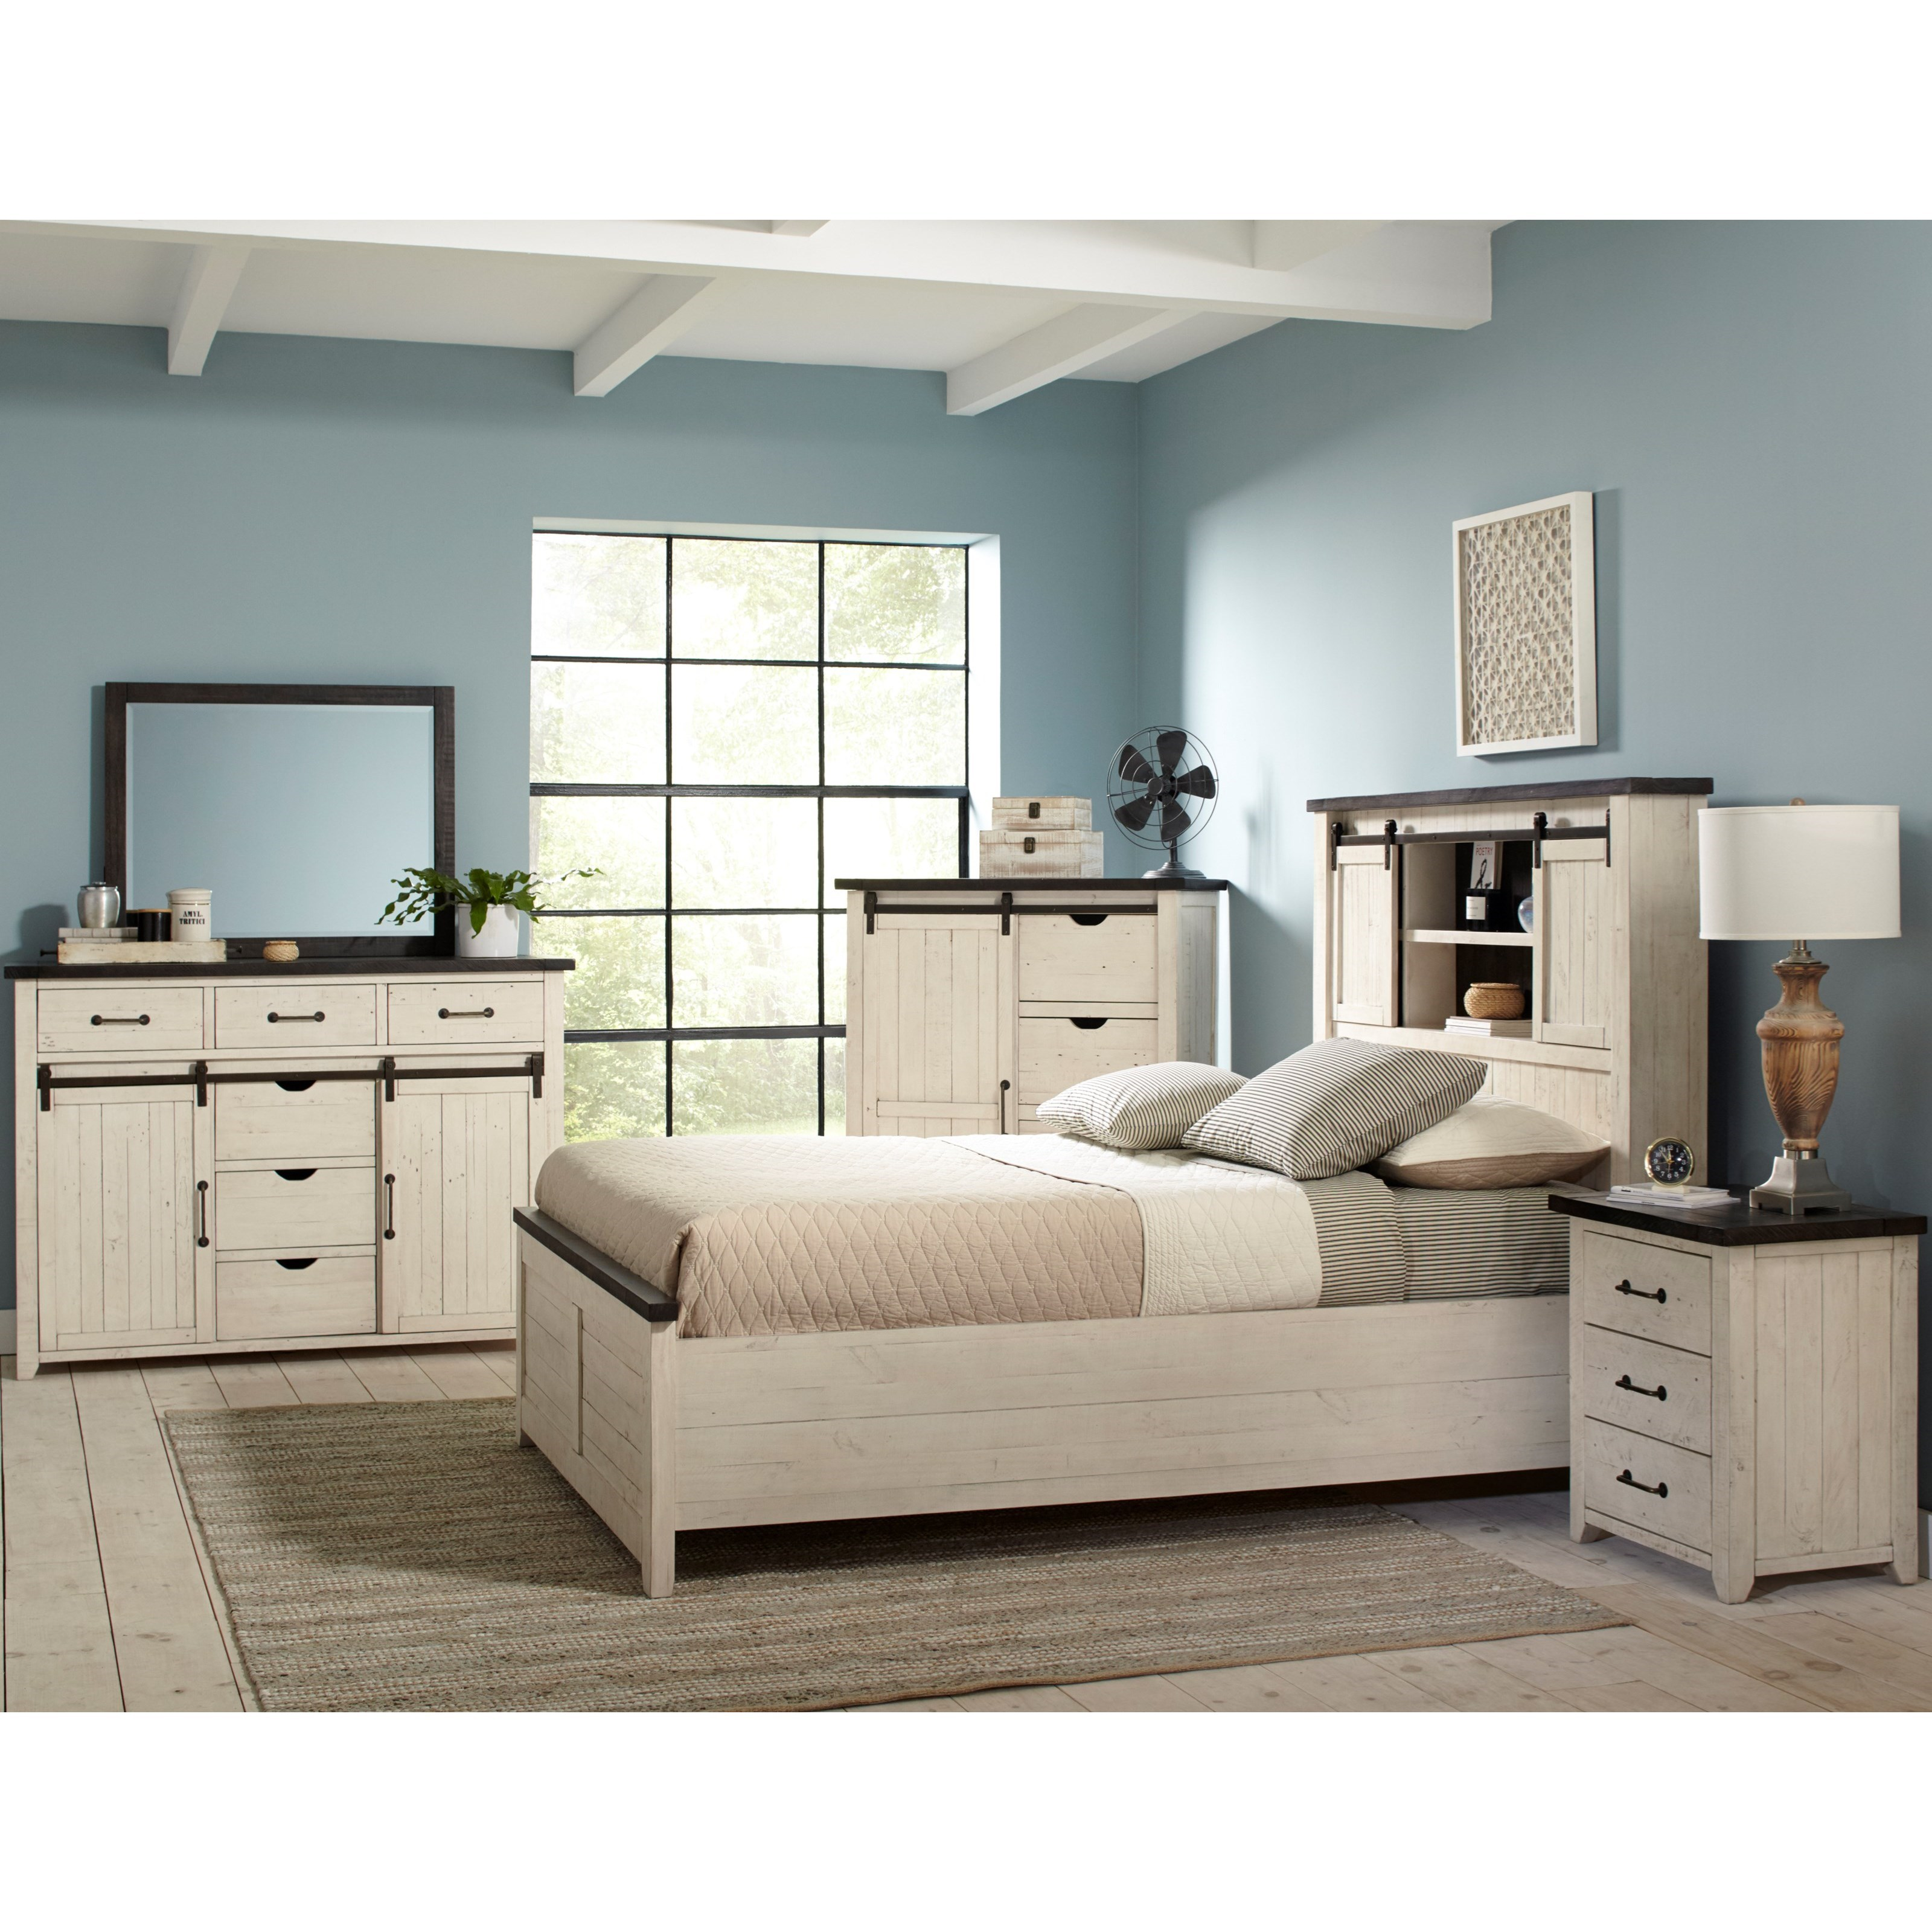 Canton White 5 Piece Queen Bedroom Group at Walker's Furniture